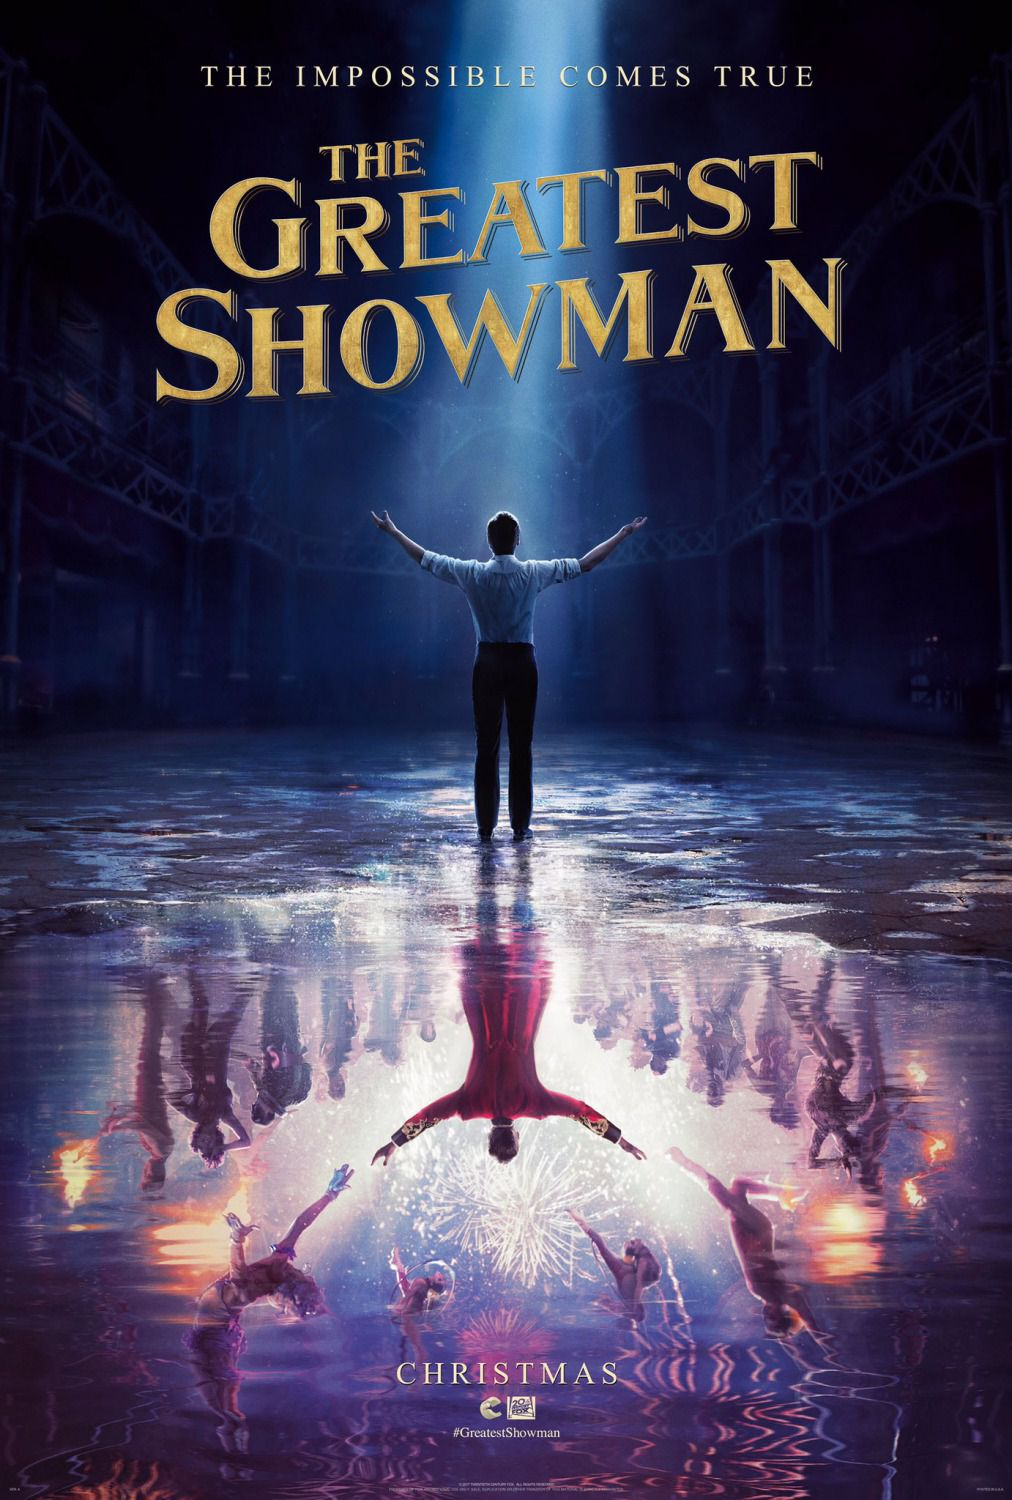 The Greatest Showman - film poster - Hugh Jackman - Michelle Williams - Rebecca Ferguson - Zac Efron - film poster